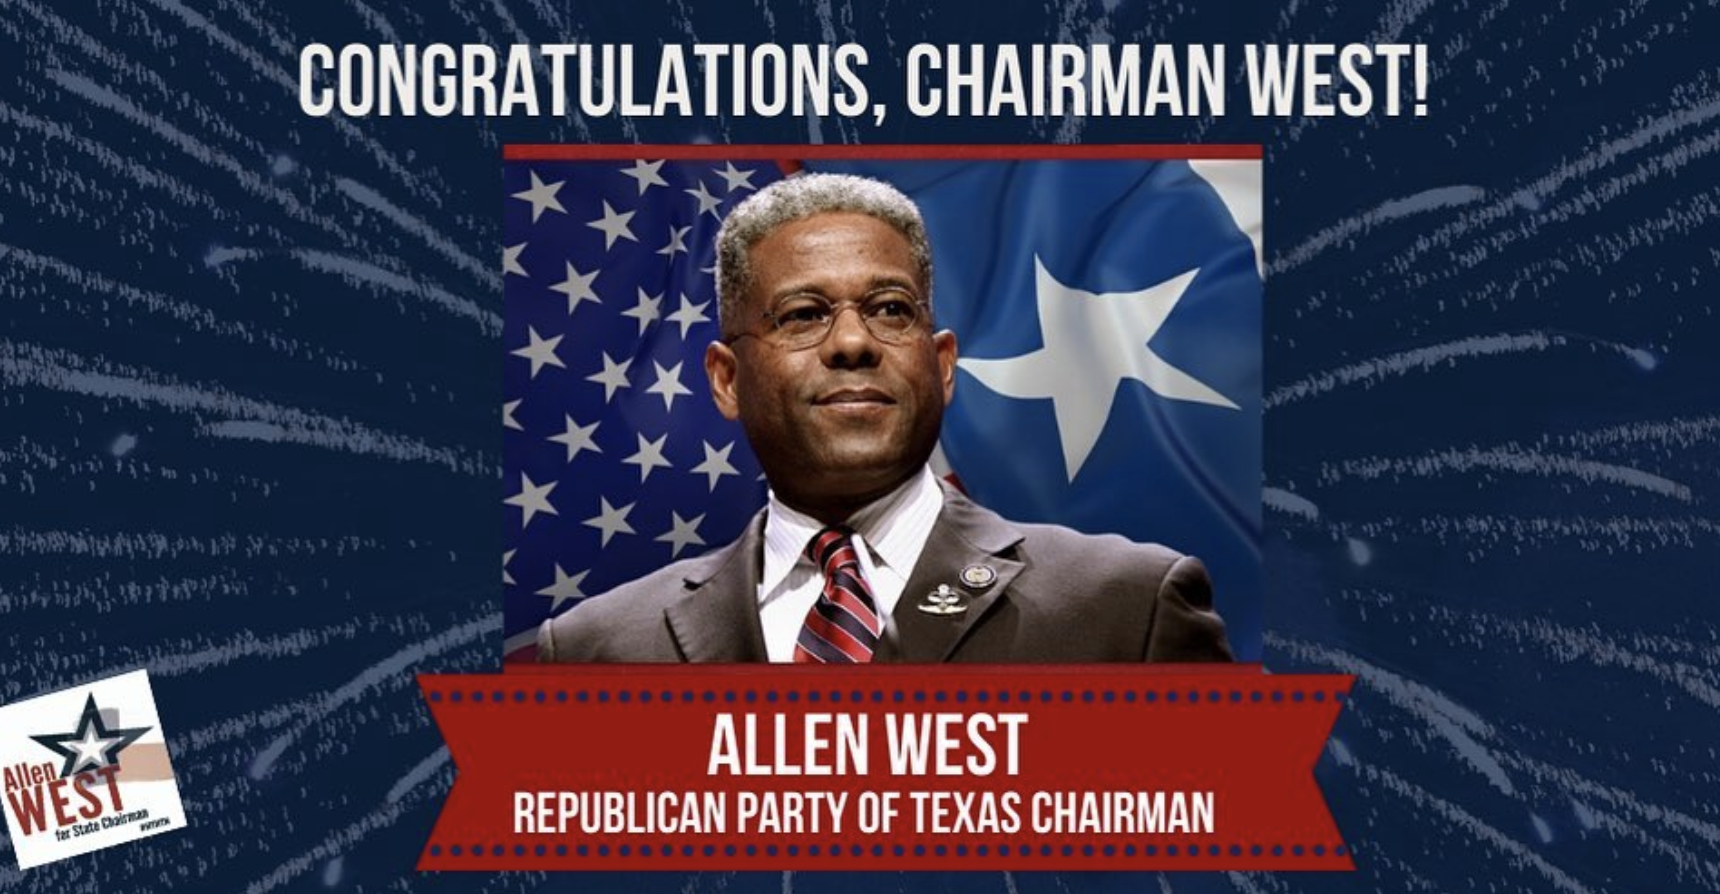 Allen West wins Texas GOP Chairmanship